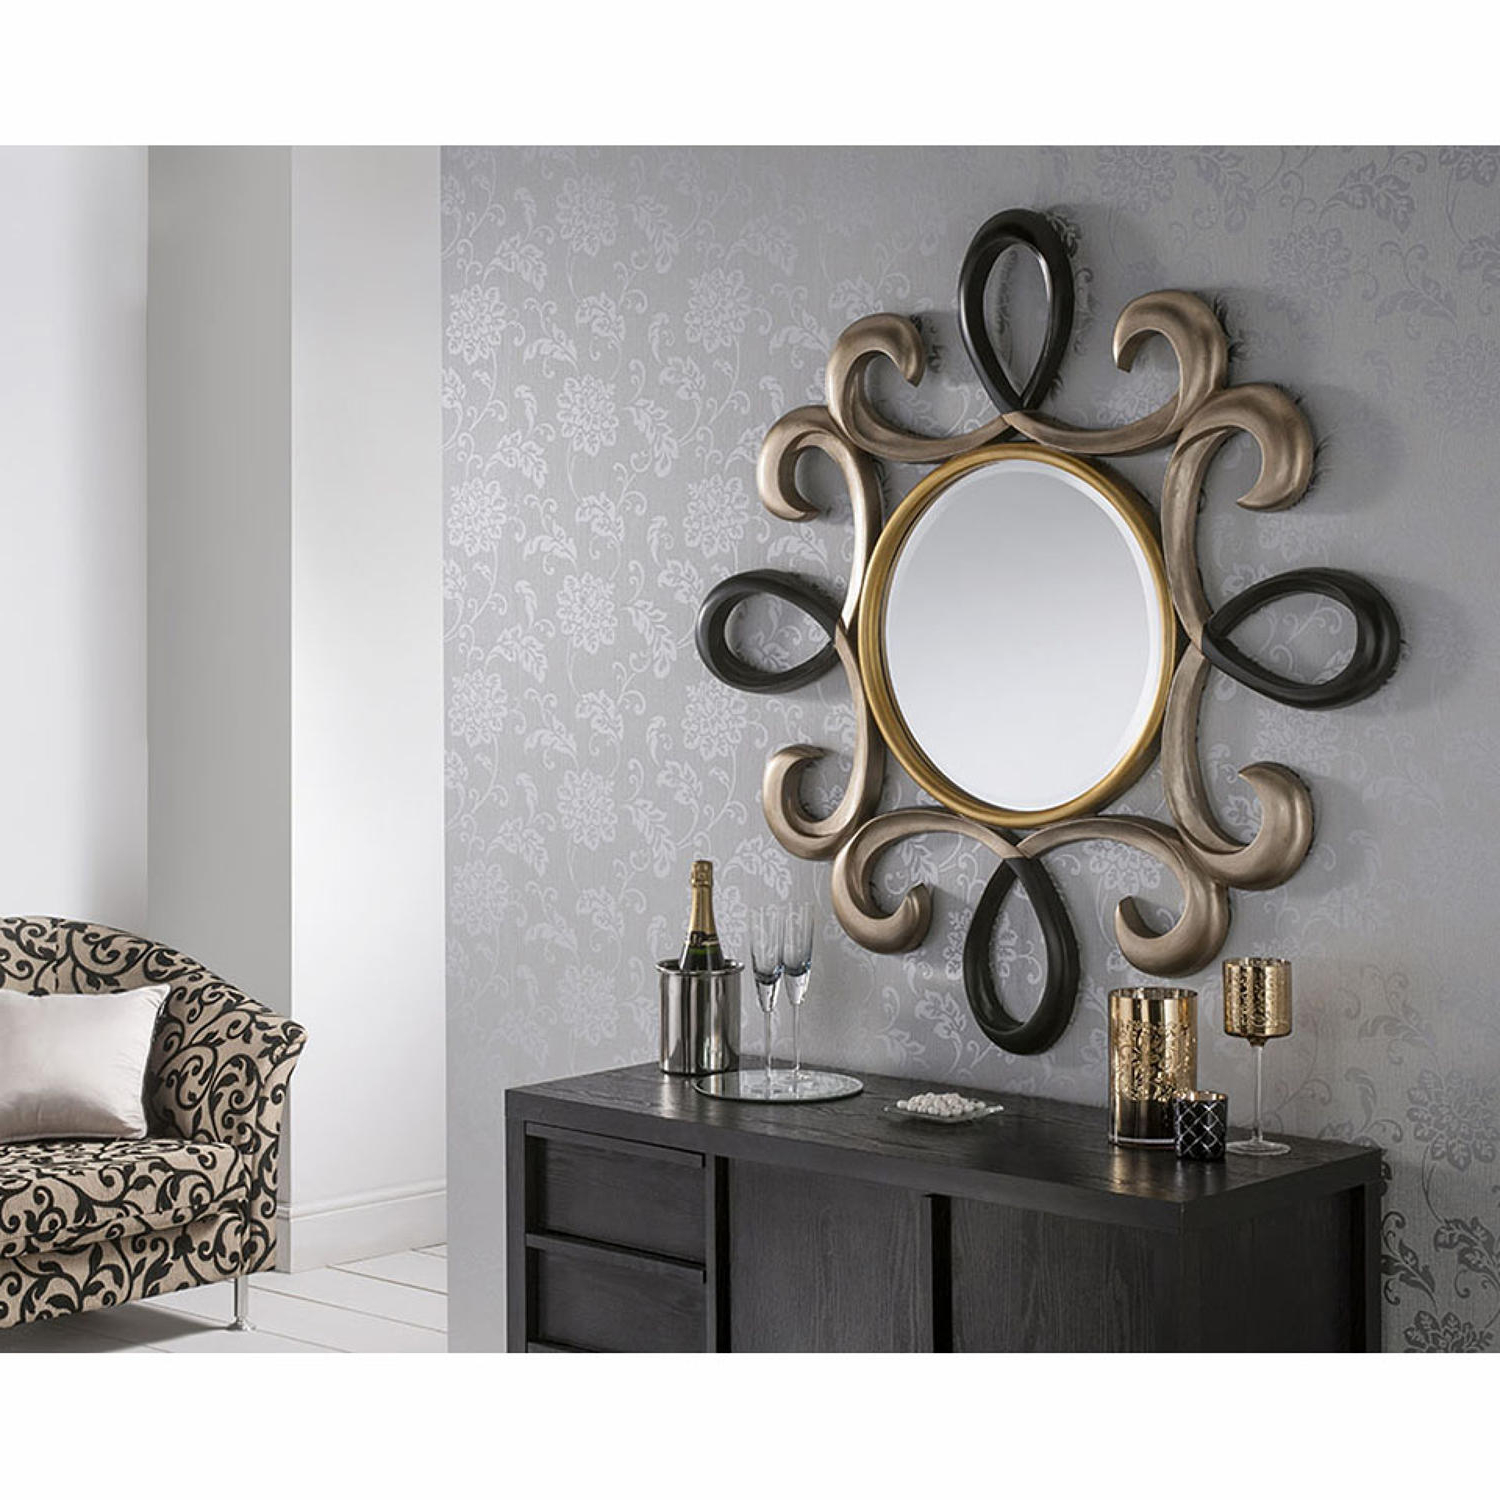 Famous Round Circular Swirl Wall Mirror In Dorking, Surrey Throughout Swirl Wall Mirrors (View 19 of 20)